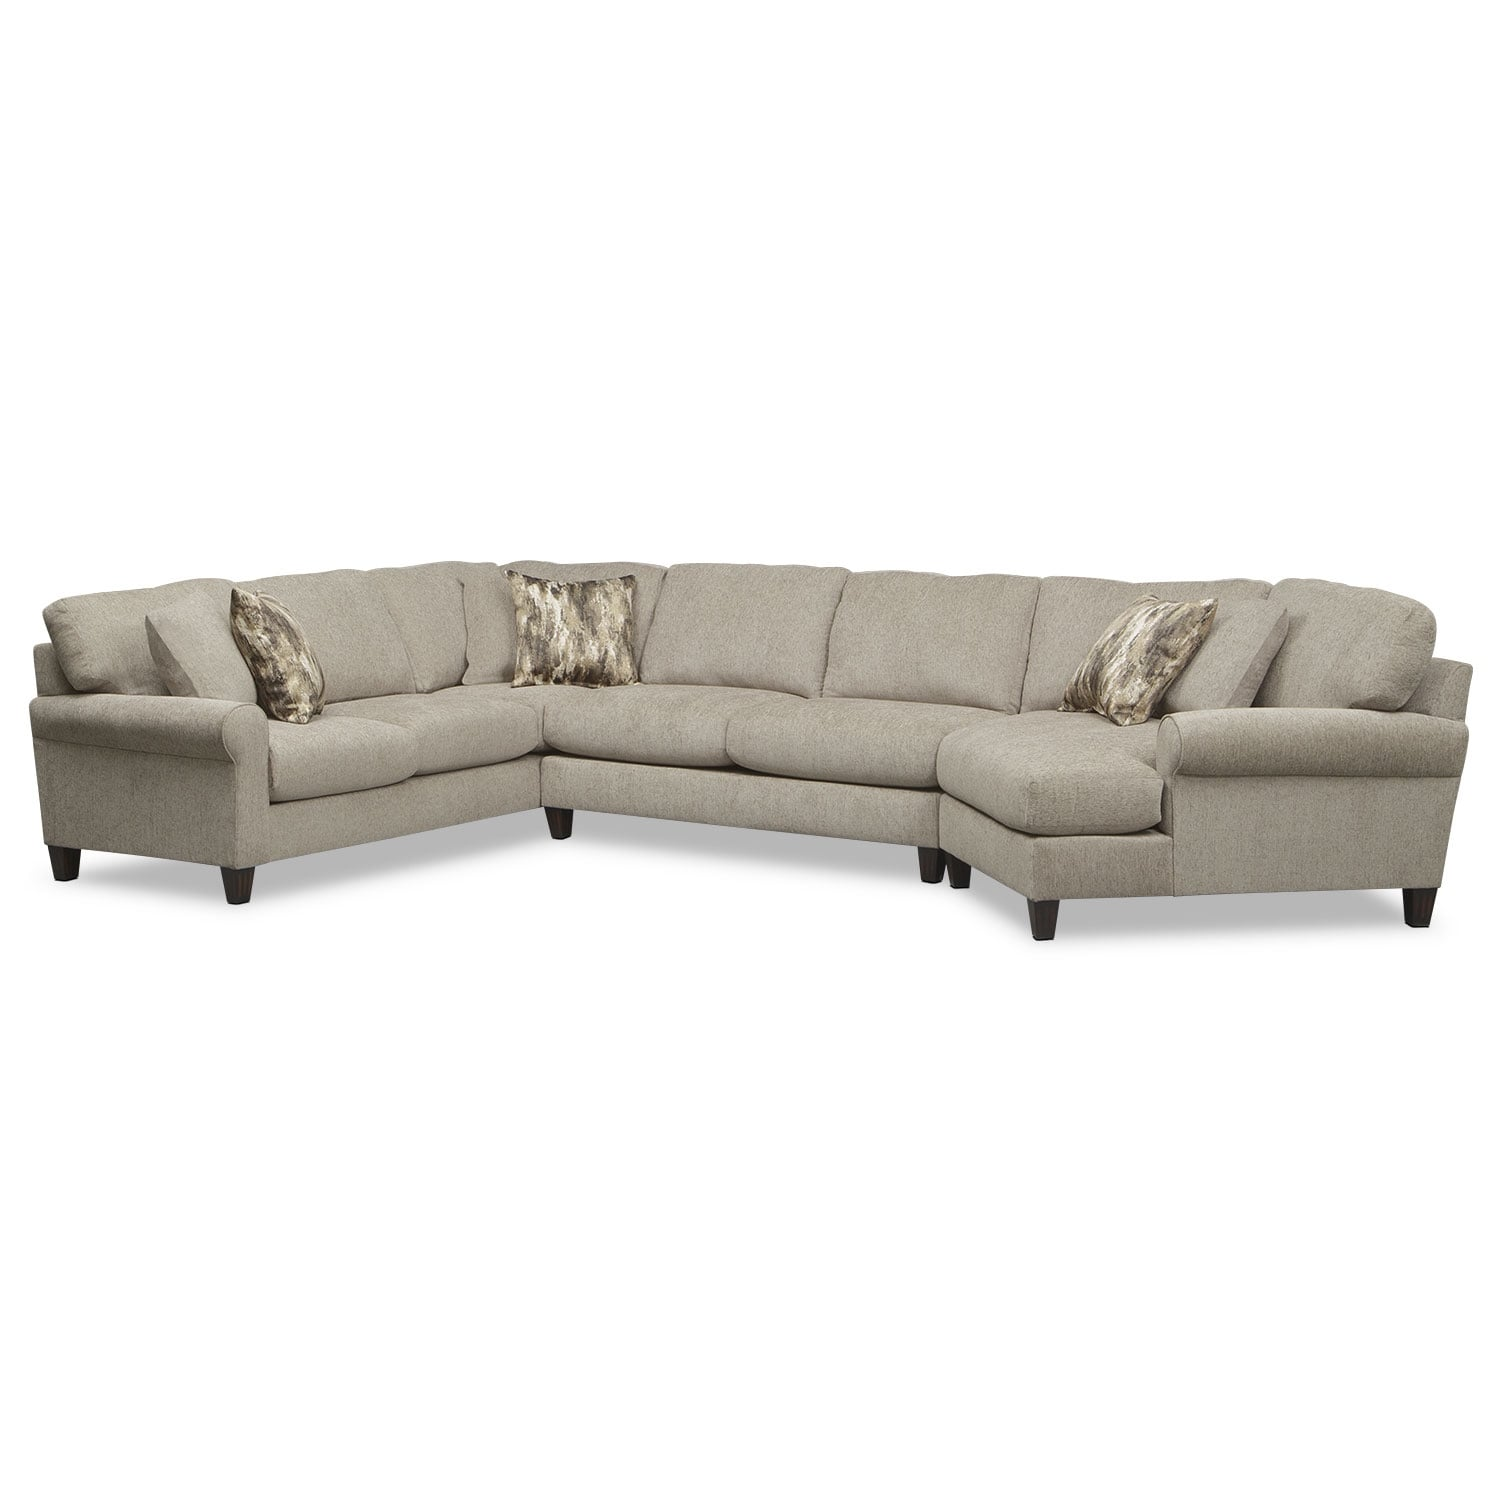 Karma 3-Piece Sectional with Right-Facing Cuddler - Mink